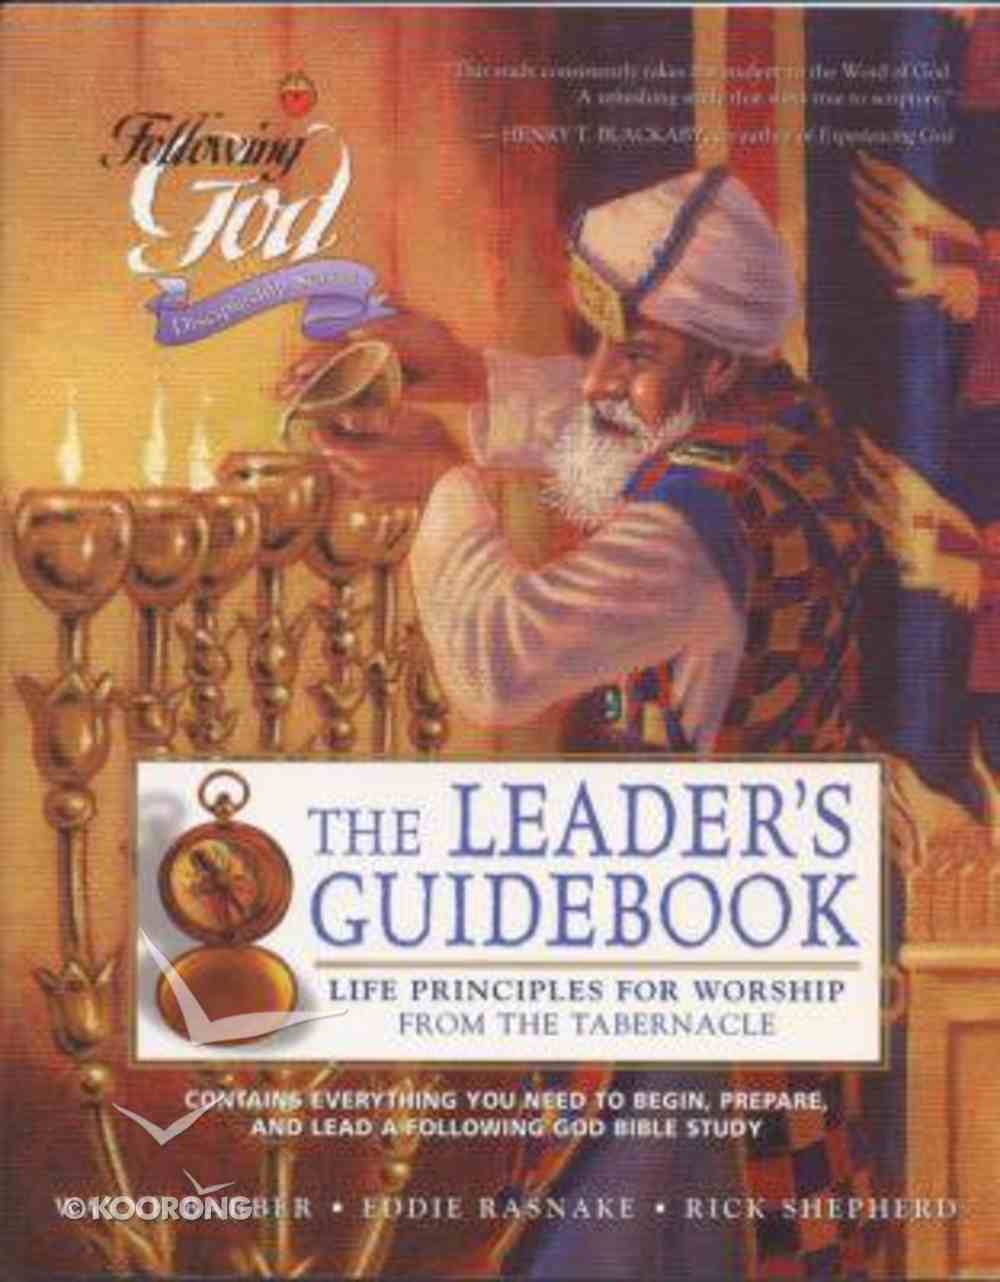 Life Principles For Worship From the Tabernacle (Leader's Guide) (Following God: Discipleship Series) Paperback